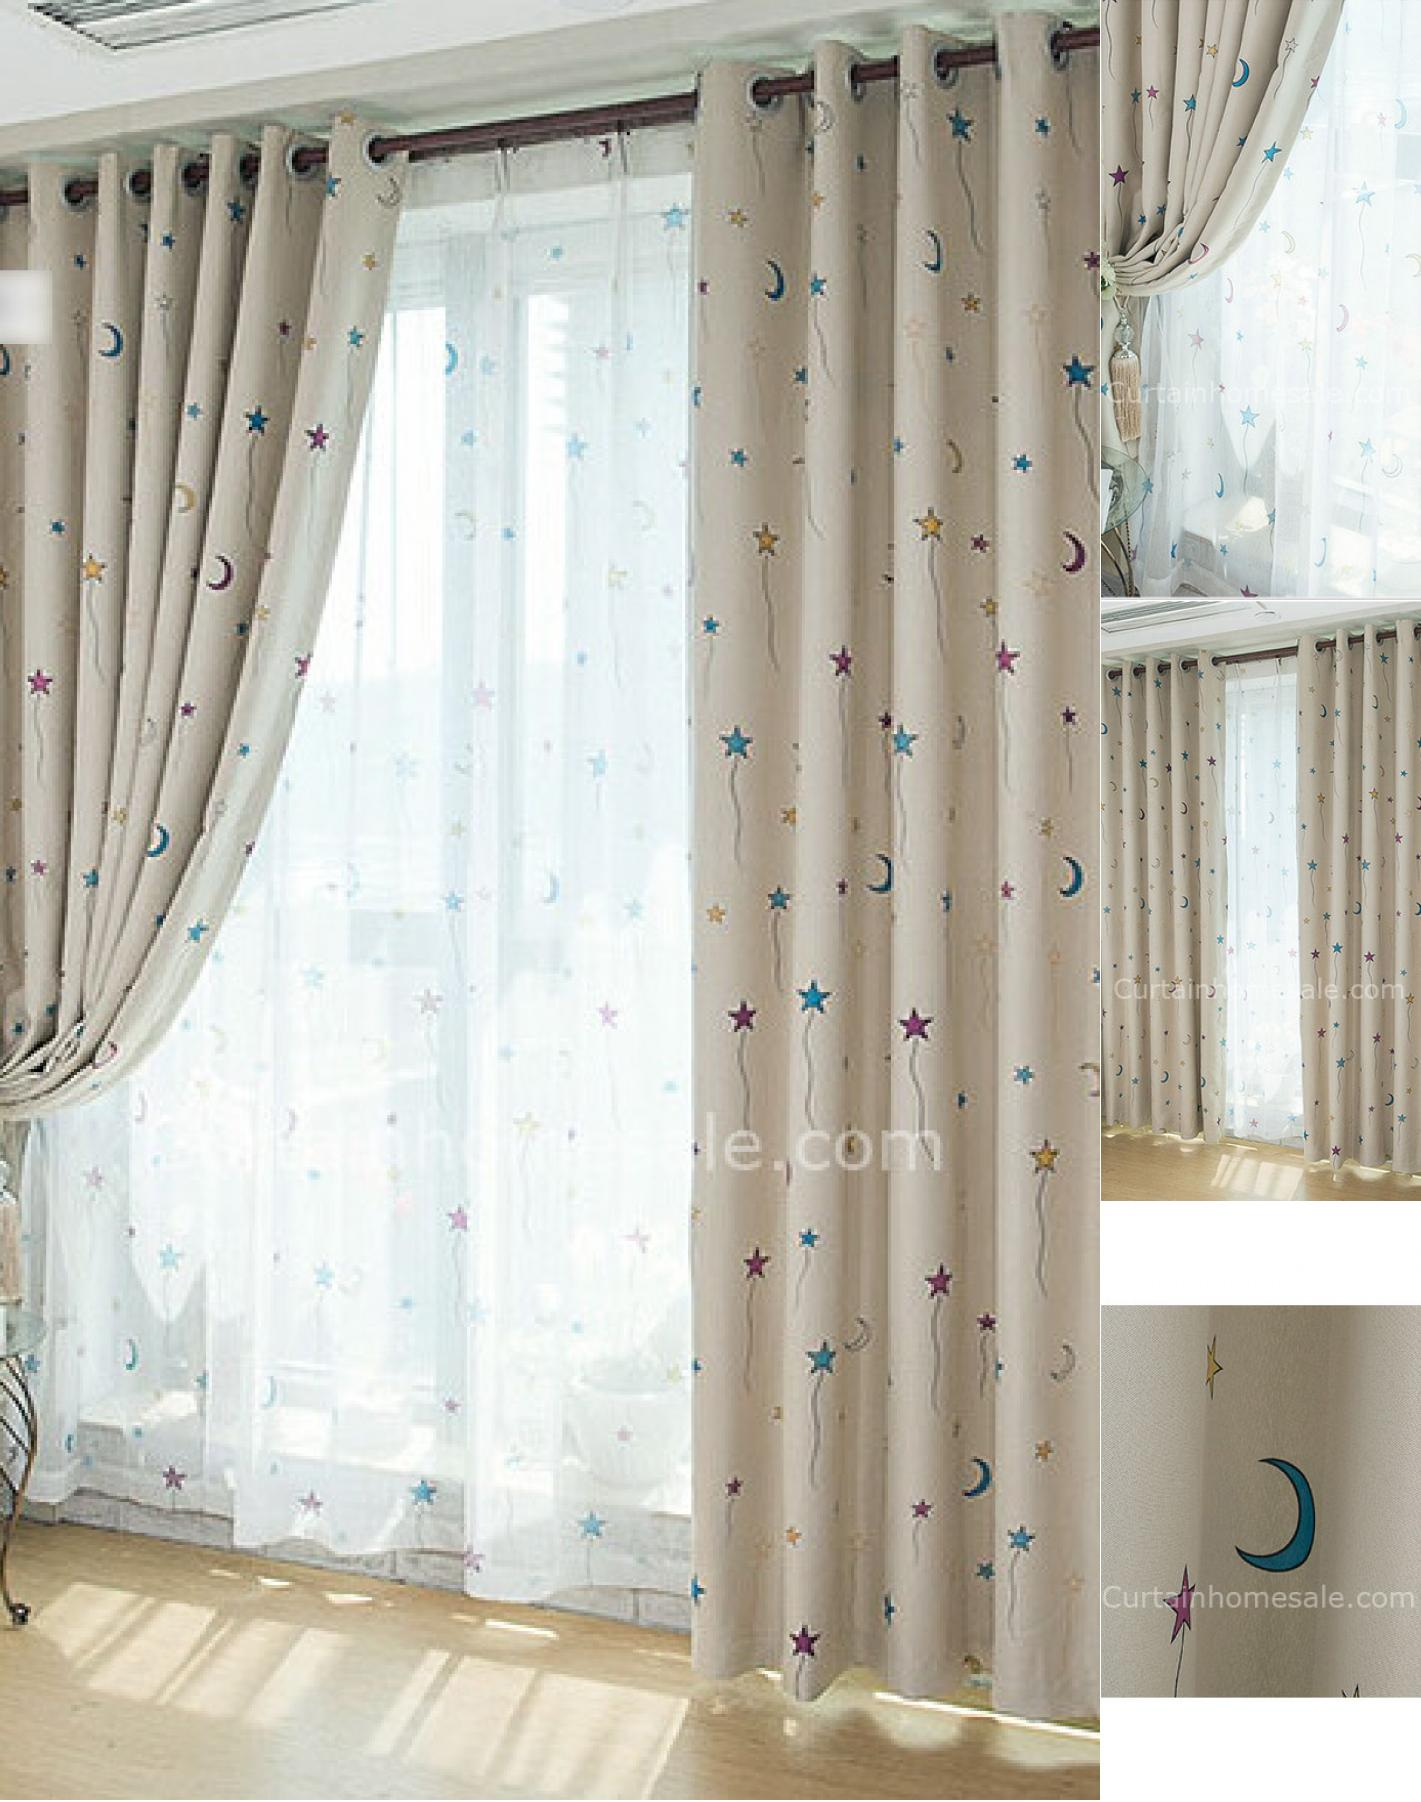 blackout curtains nursery | homesfeed